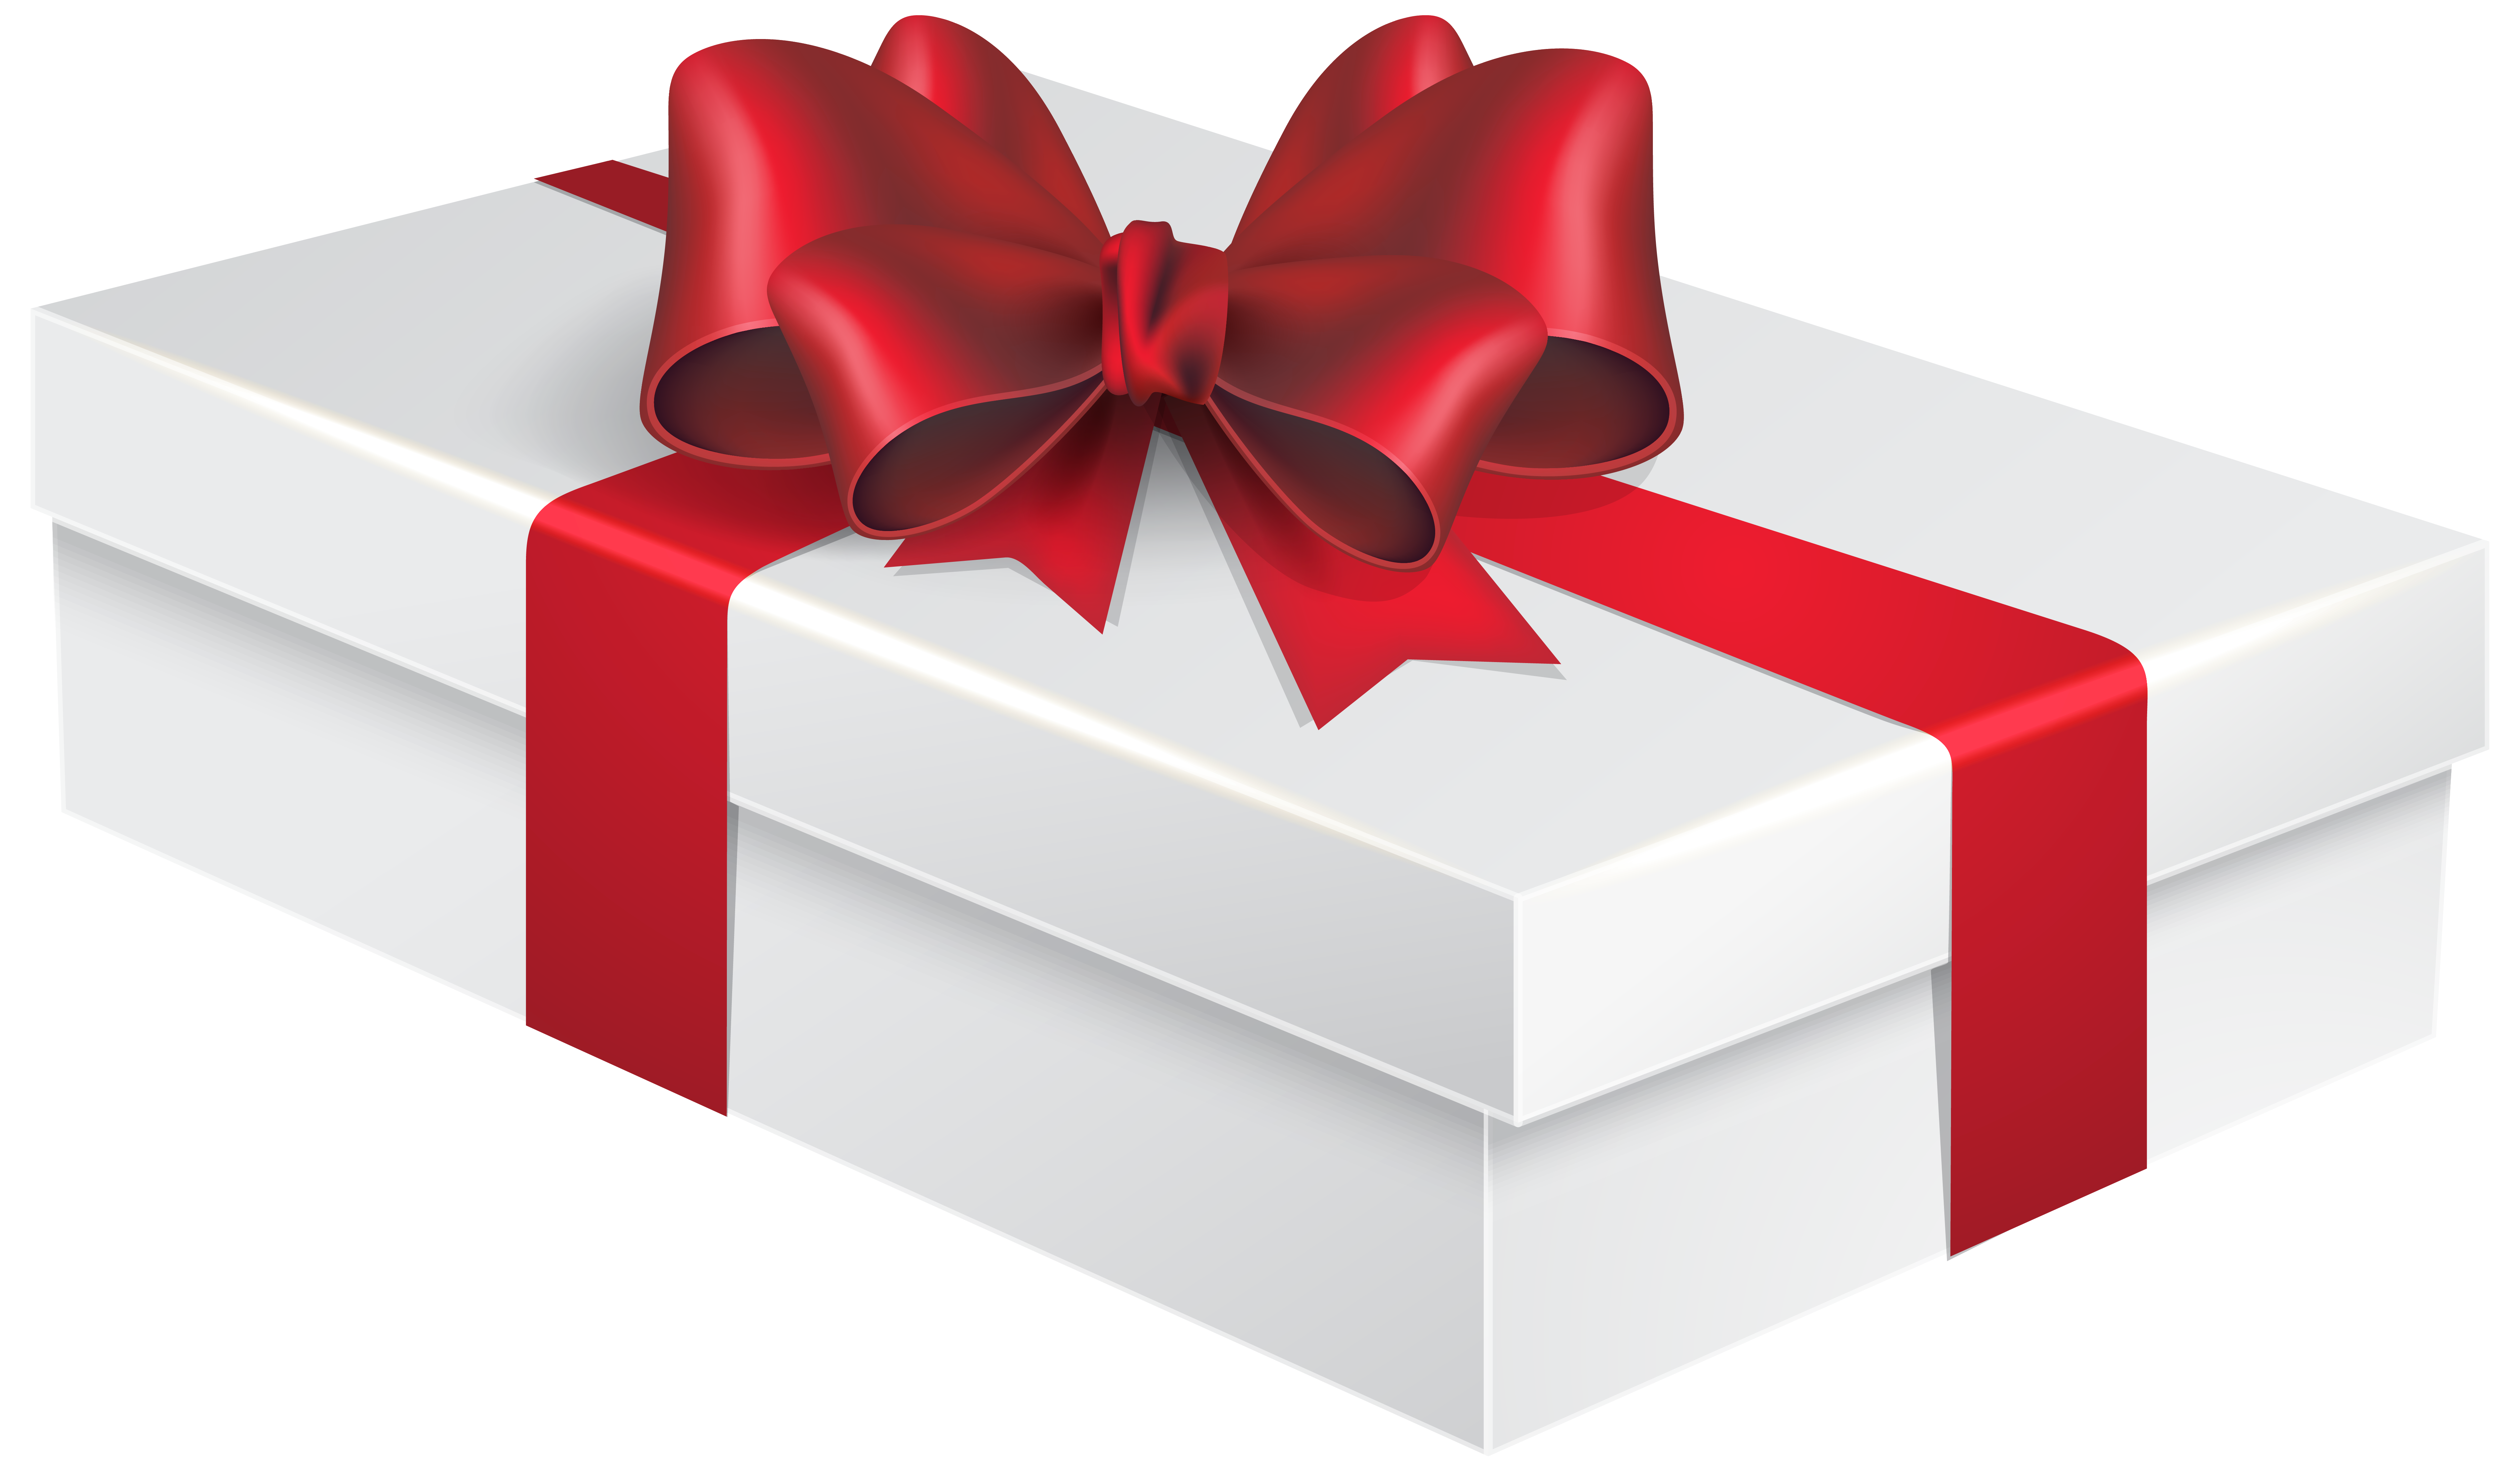 White gift box png. Clipart present tall